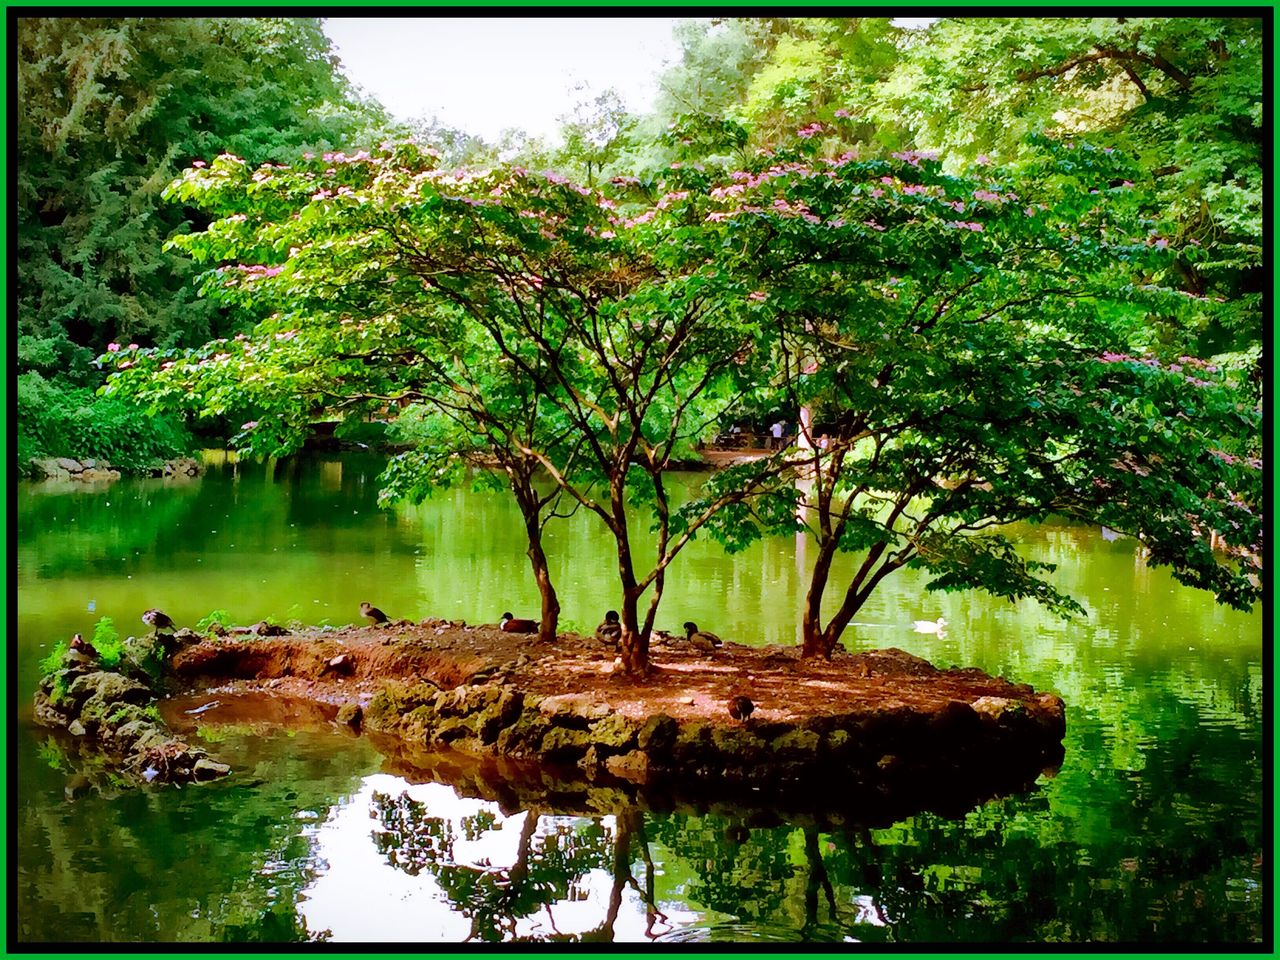 tree, water, nature, reflection, tranquility, no people, growth, lake, outdoors, beauty in nature, plant, forest, day, scenics